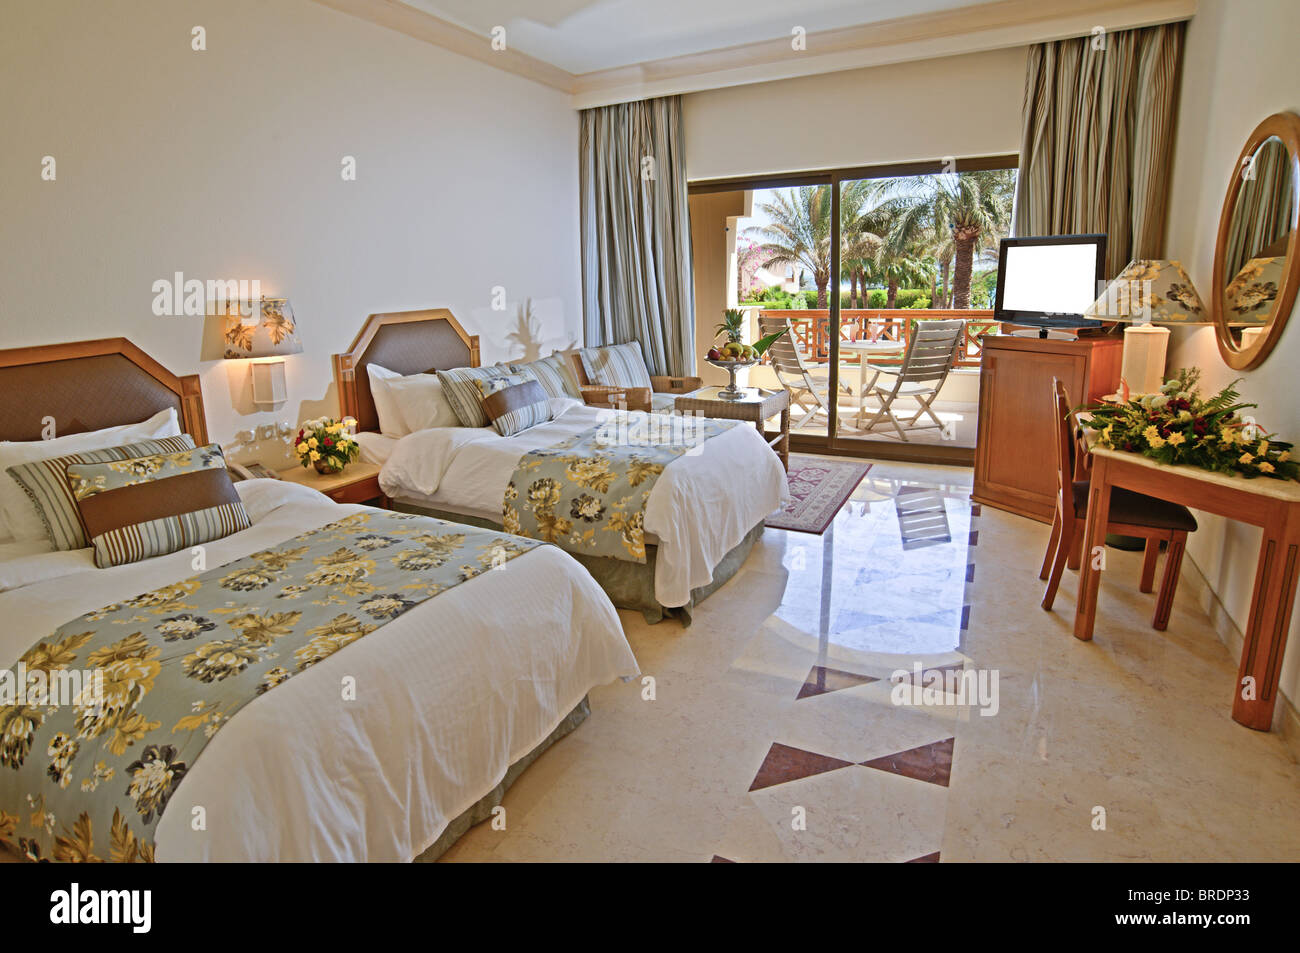 Interior Decor Of A Luxury Hotel Room With A Tropical Sea View